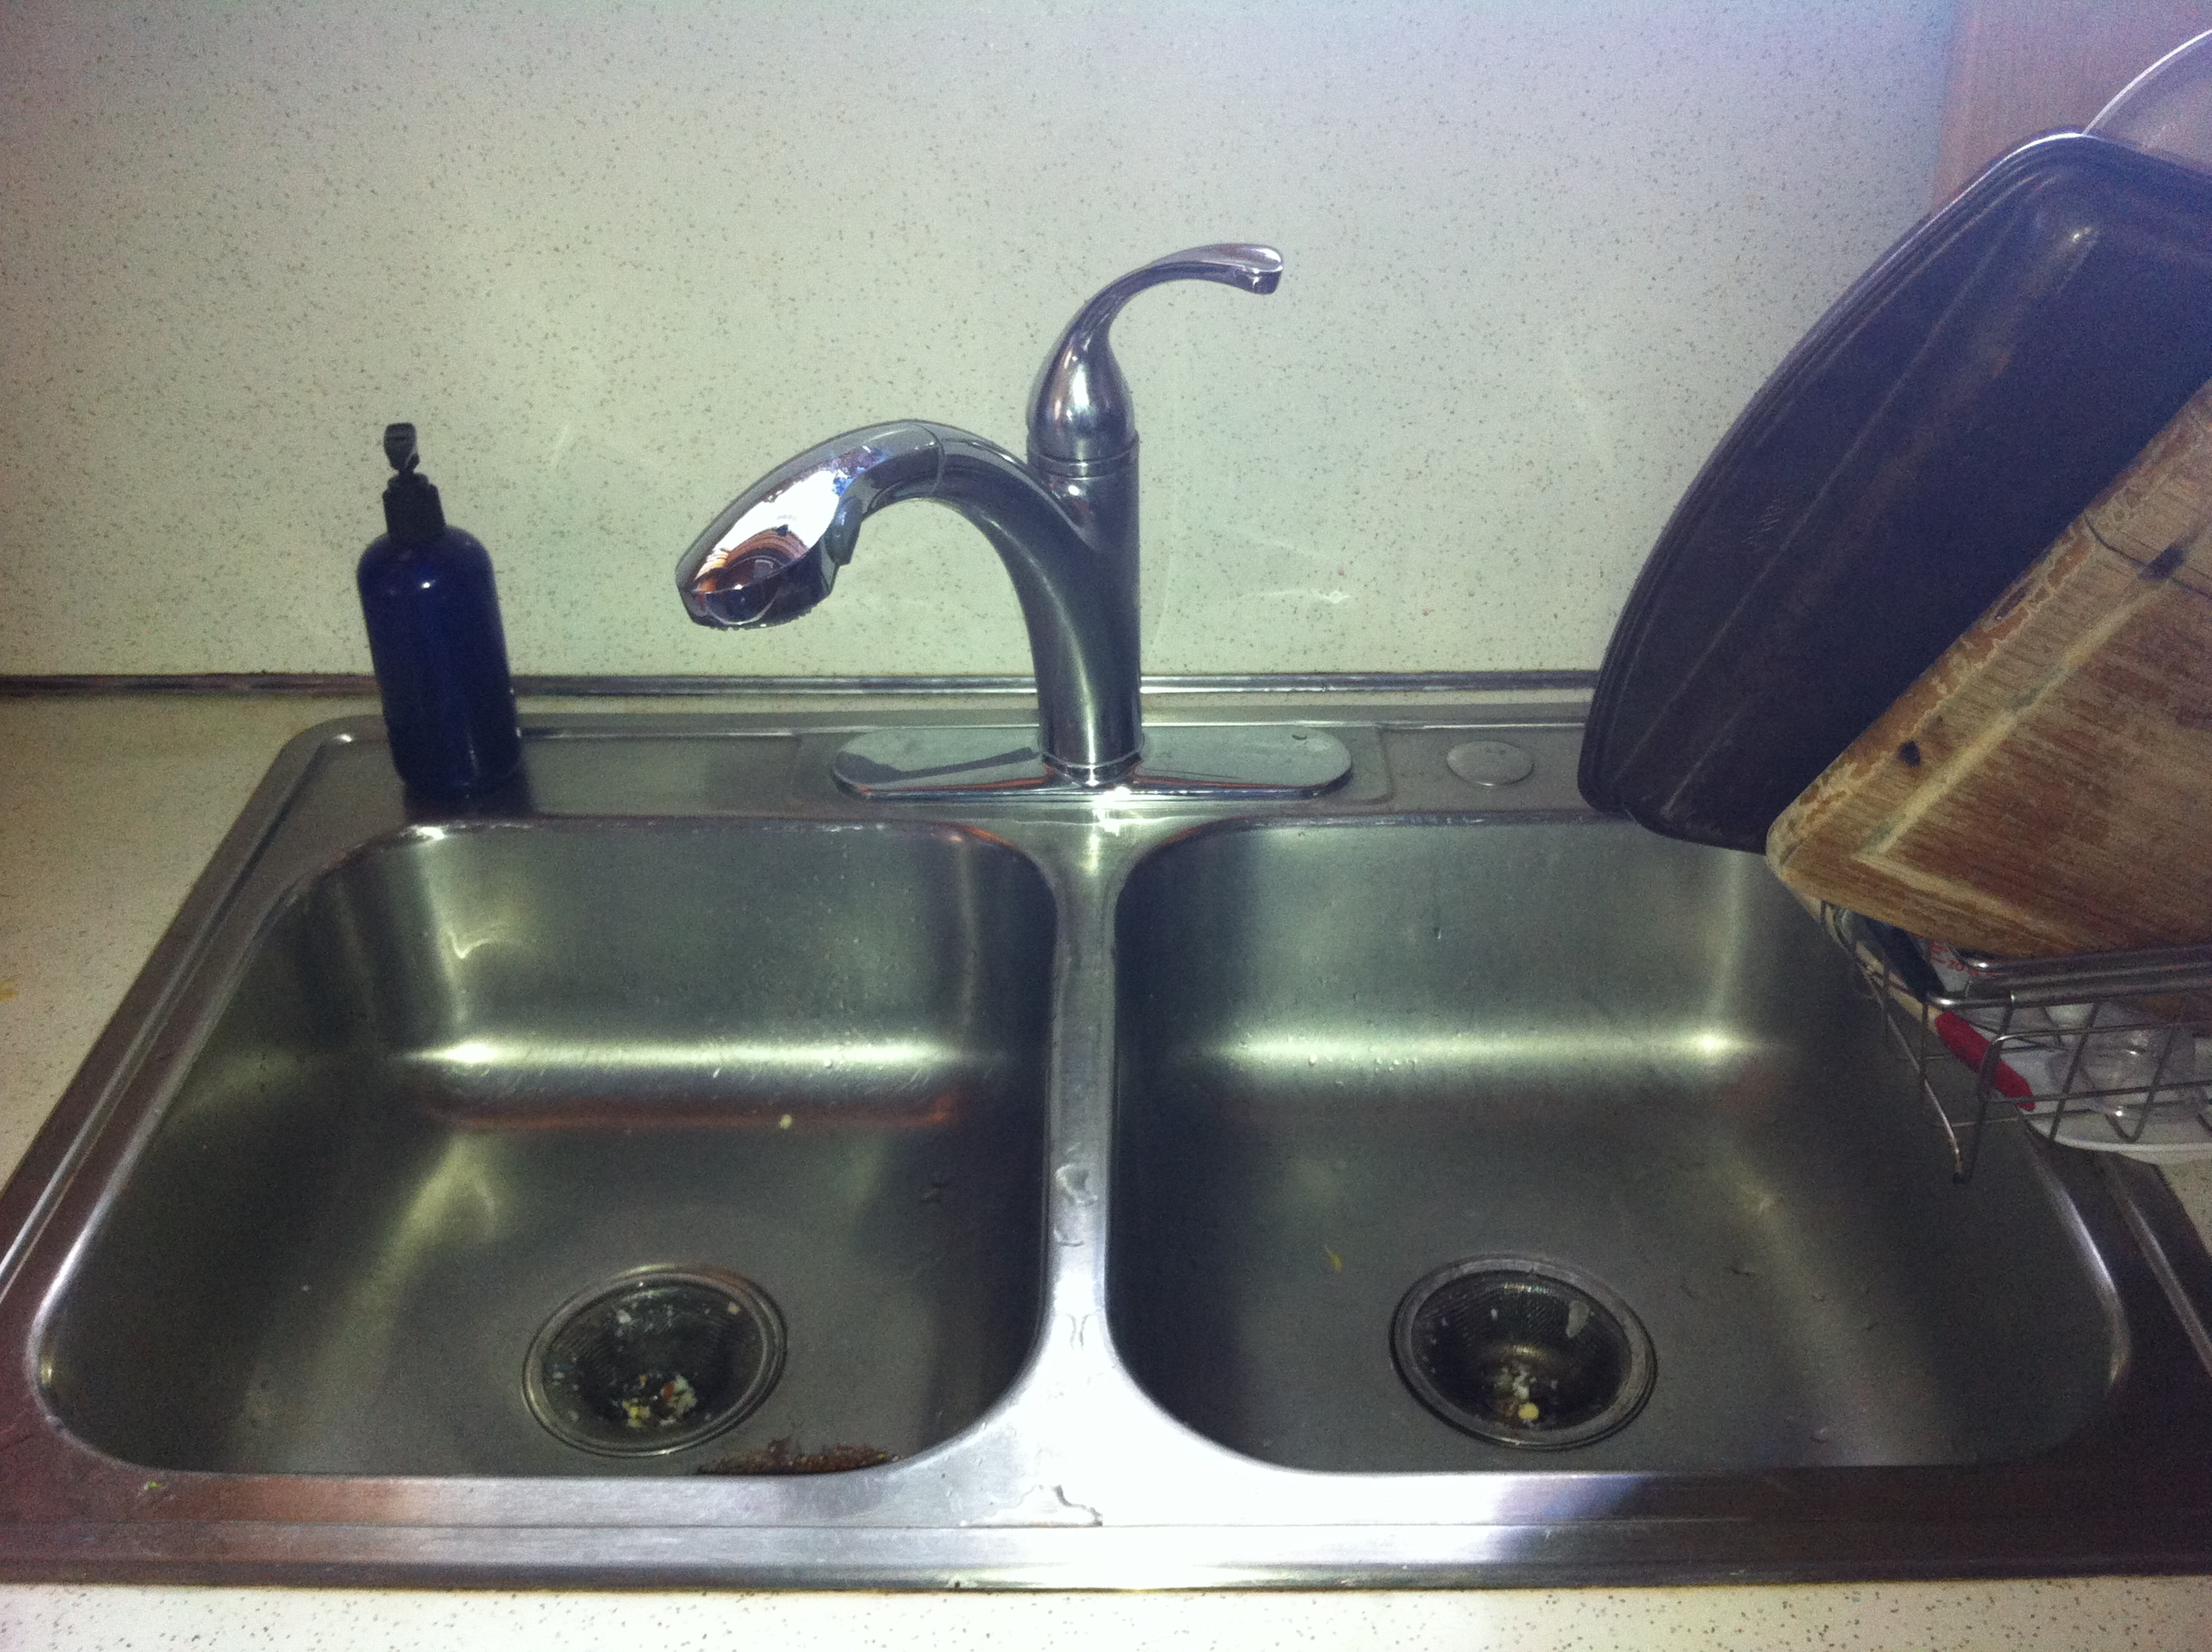 Best Of No Hot Water Kitchen Sink - Taste